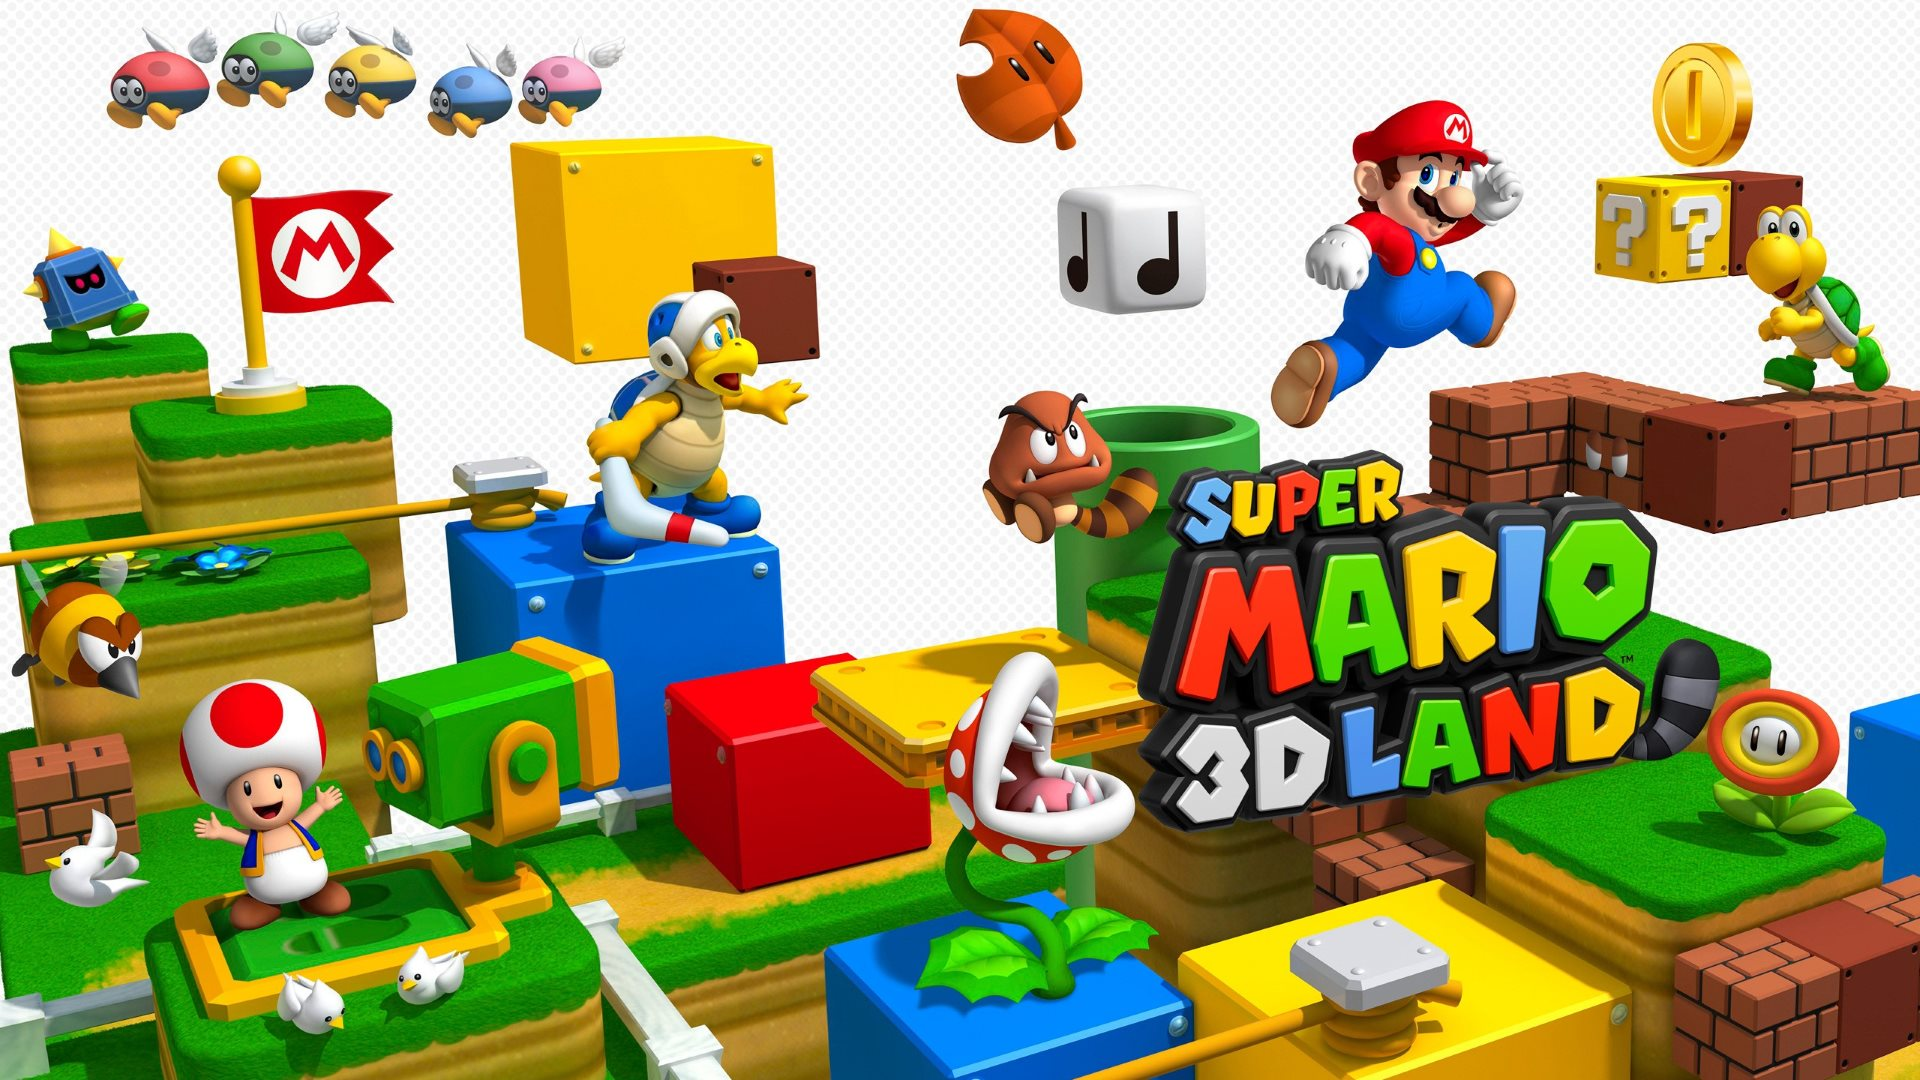 super mario d land hd wallpaper